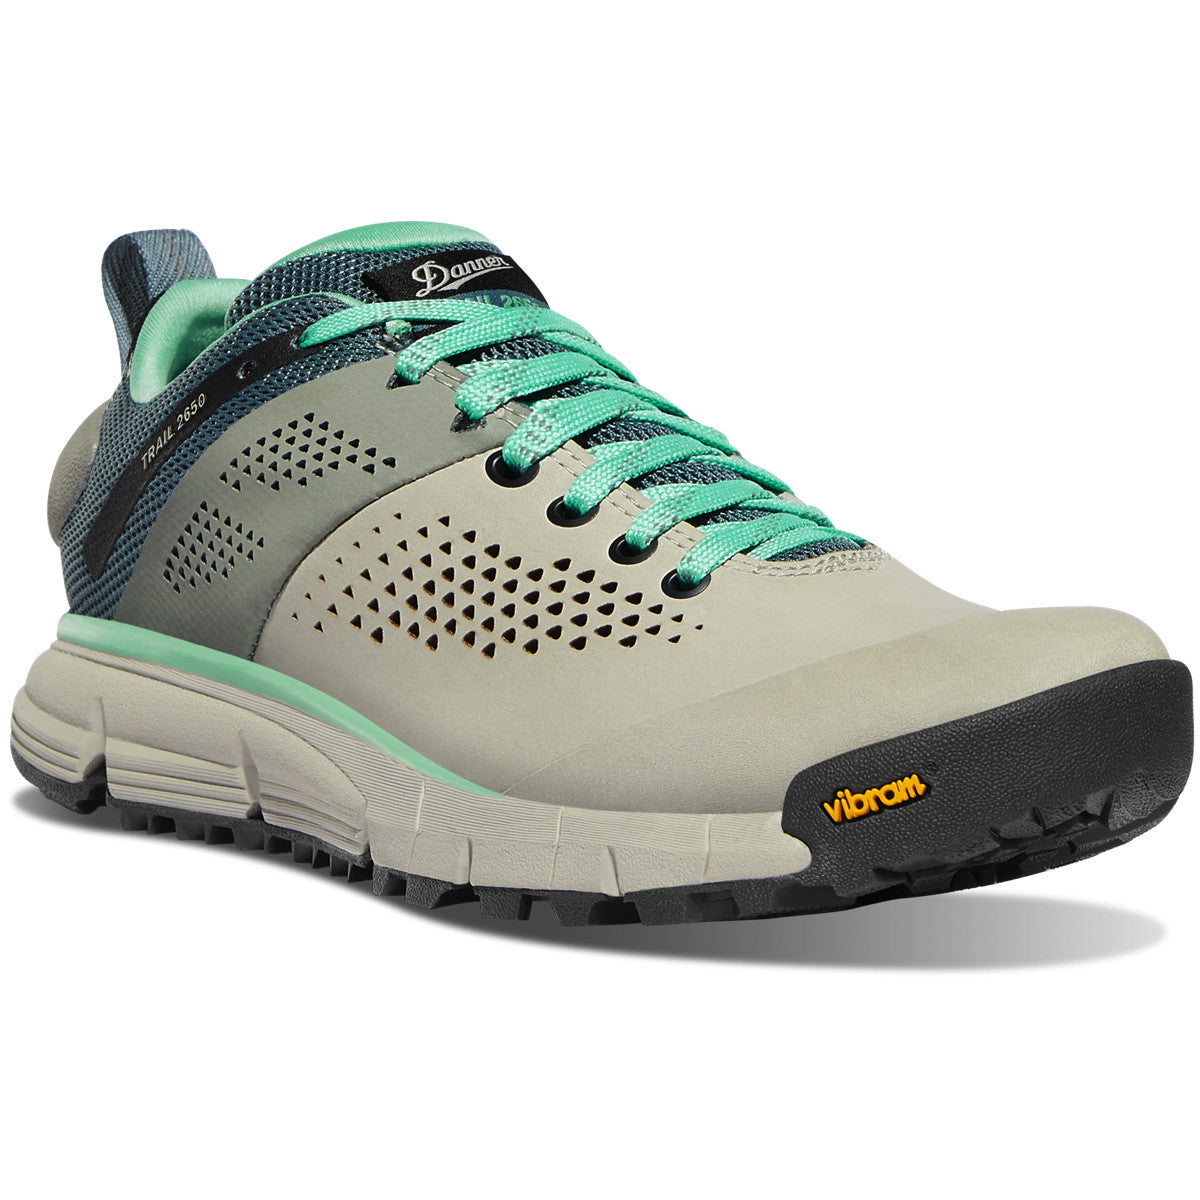 Trail 2650 Full Grain - Women's